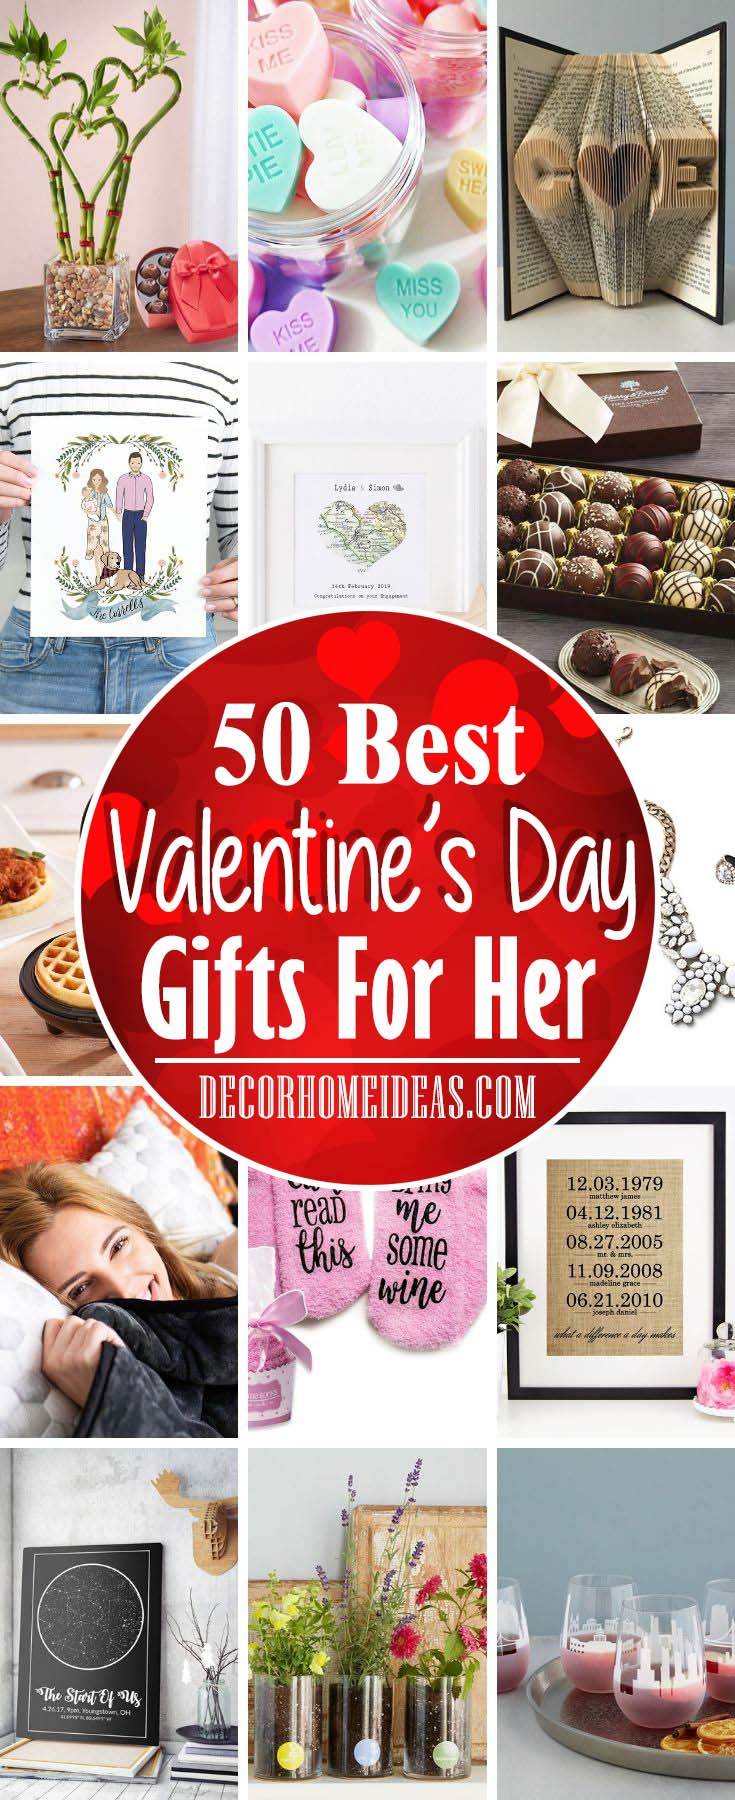 Best Valentines Day Gifts For Her #valentine #gifts #woman #girl #decorhomeideas